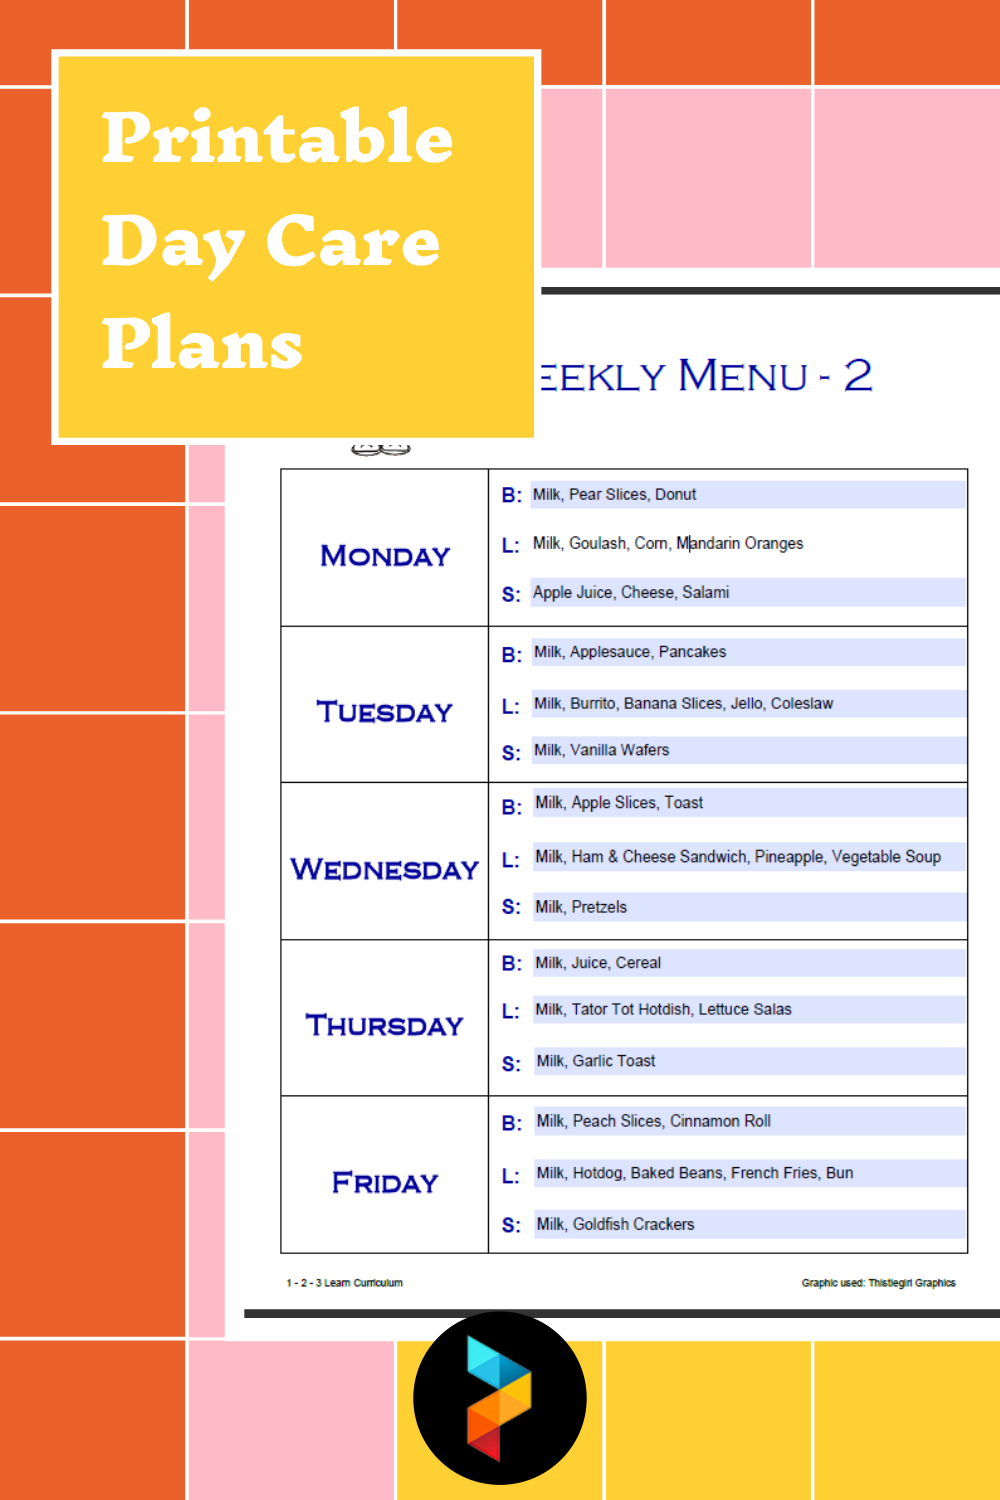 Printable Day Care Plans